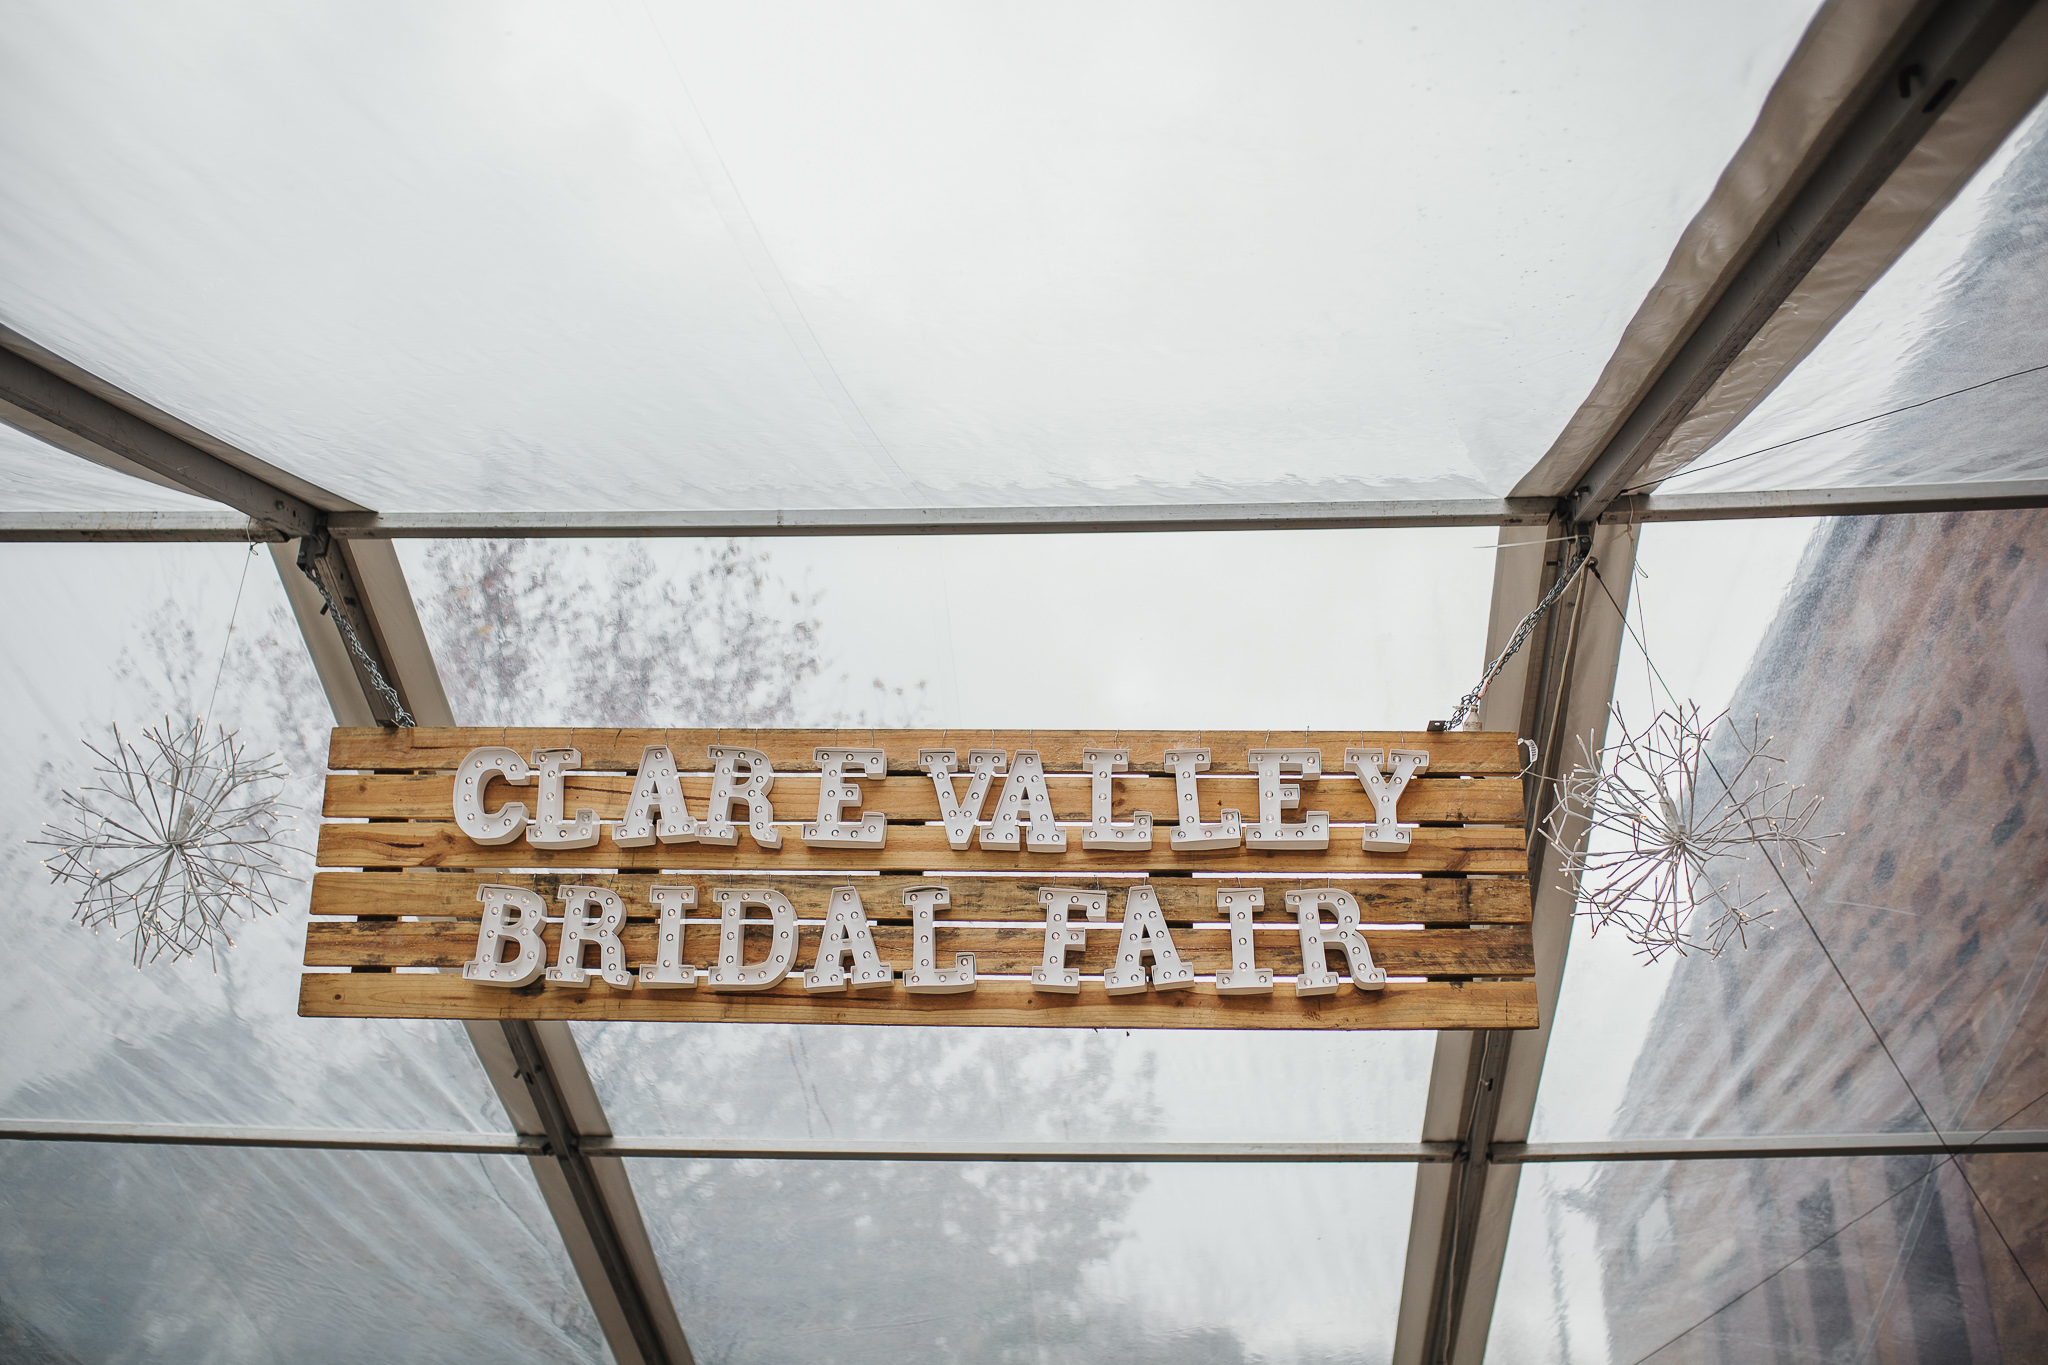 Our 2019 Clare Valley Bridal Fair - June 2019